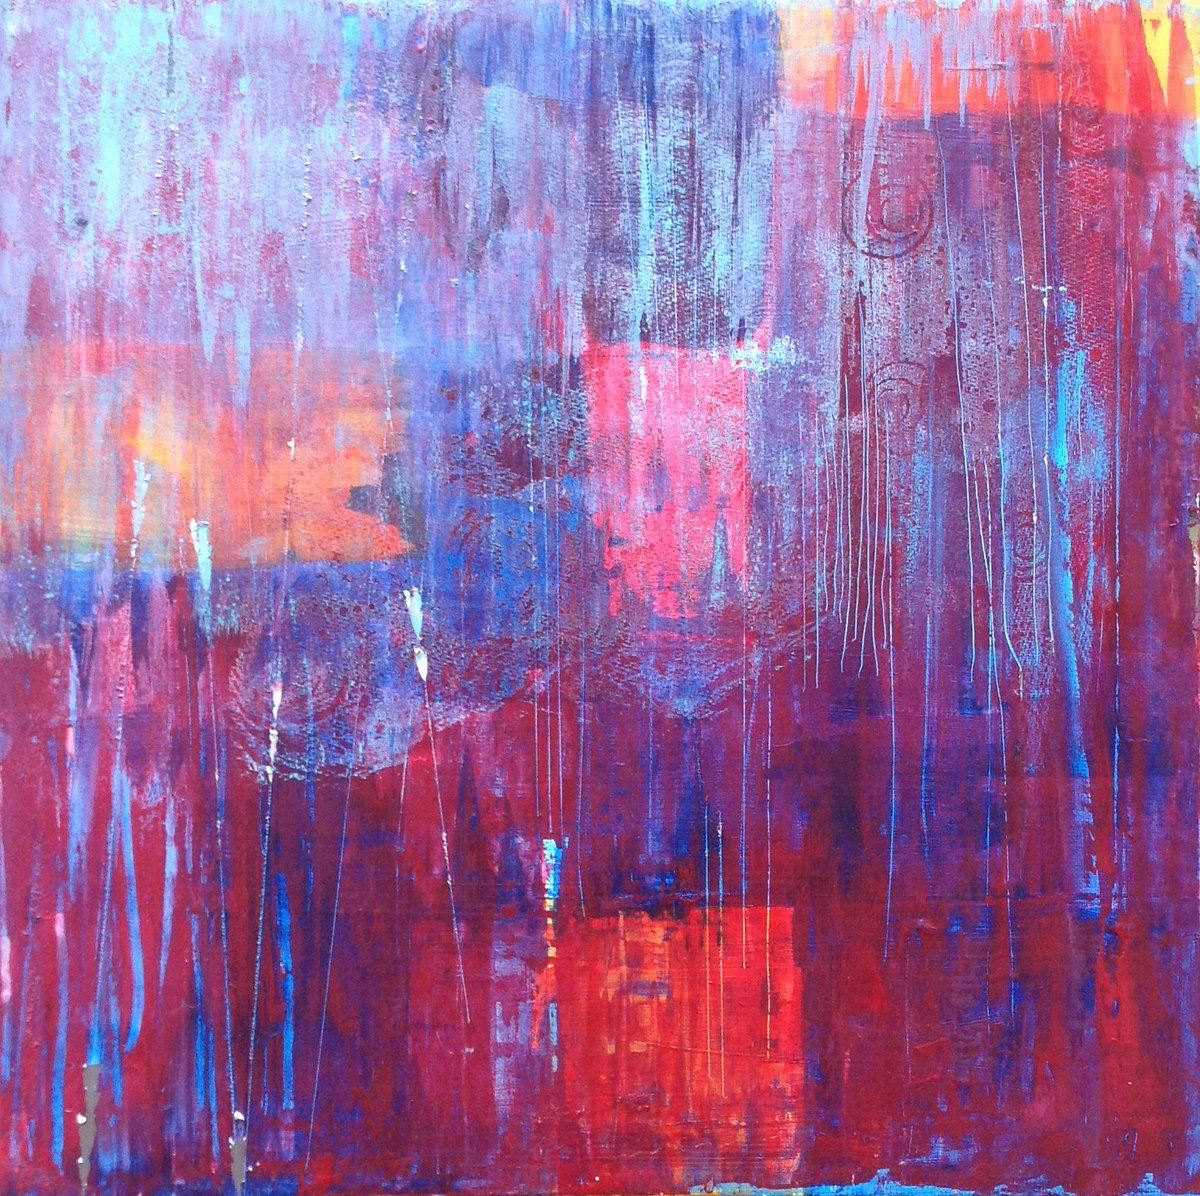 WIP - acrylic on canvas #art #abstract #painting #interiordesign  #Interiors #décor #emotive #red #blue #architects #new #ForSale  #vibrant<br>http://pic.twitter.com/giBSWIv3Ix